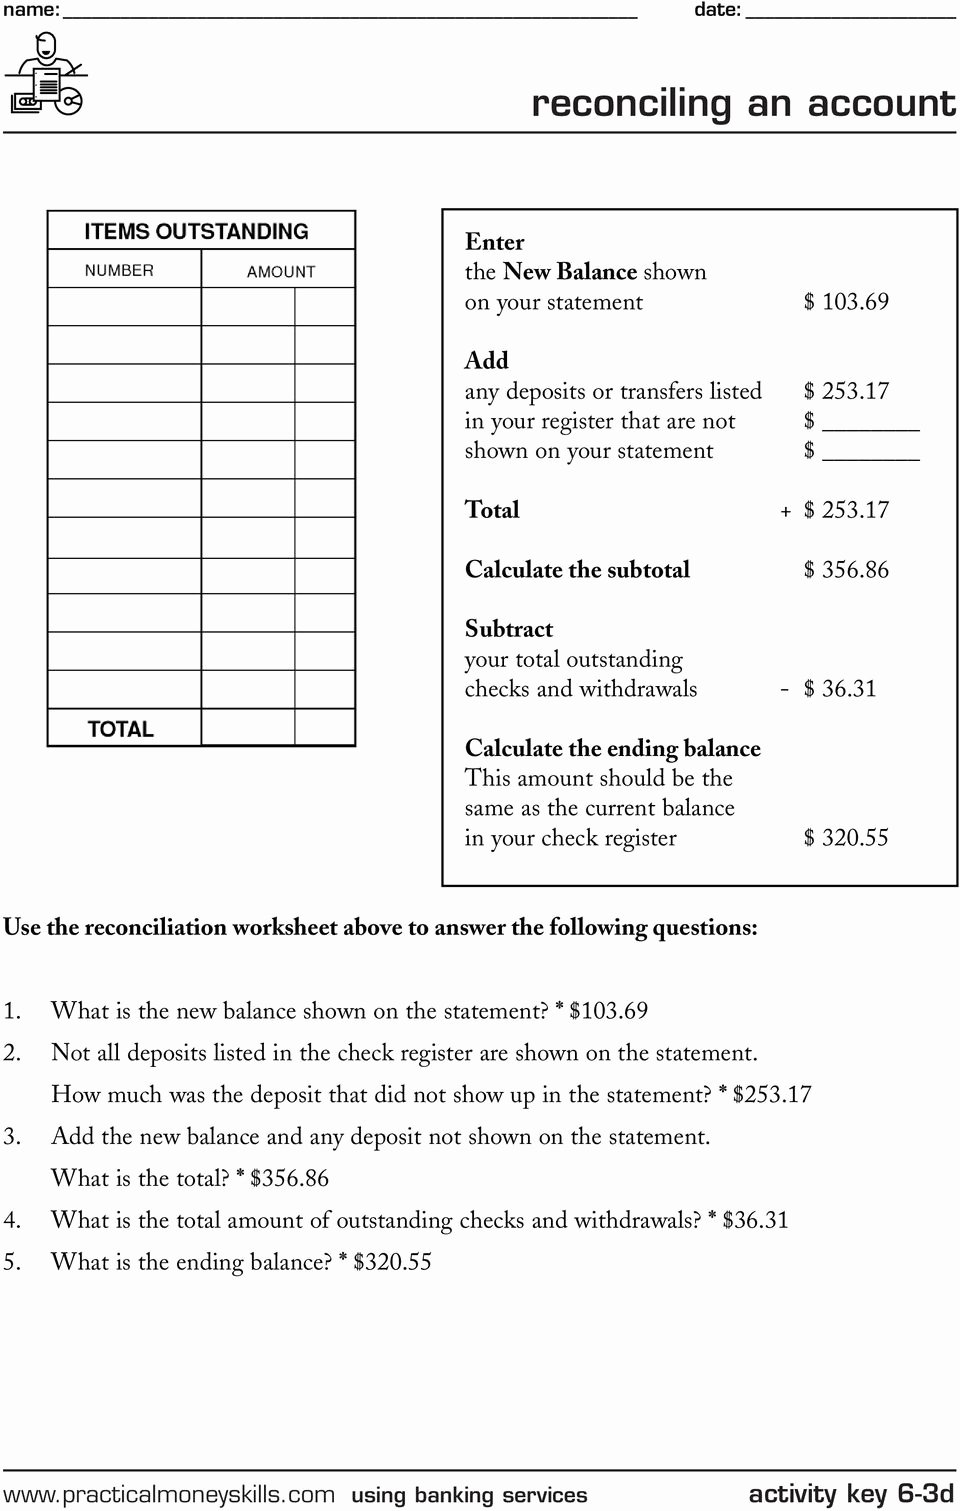 Reconciling A Bank Statement Worksheet Lovely Keeping A Running Balance Pdf Free Download